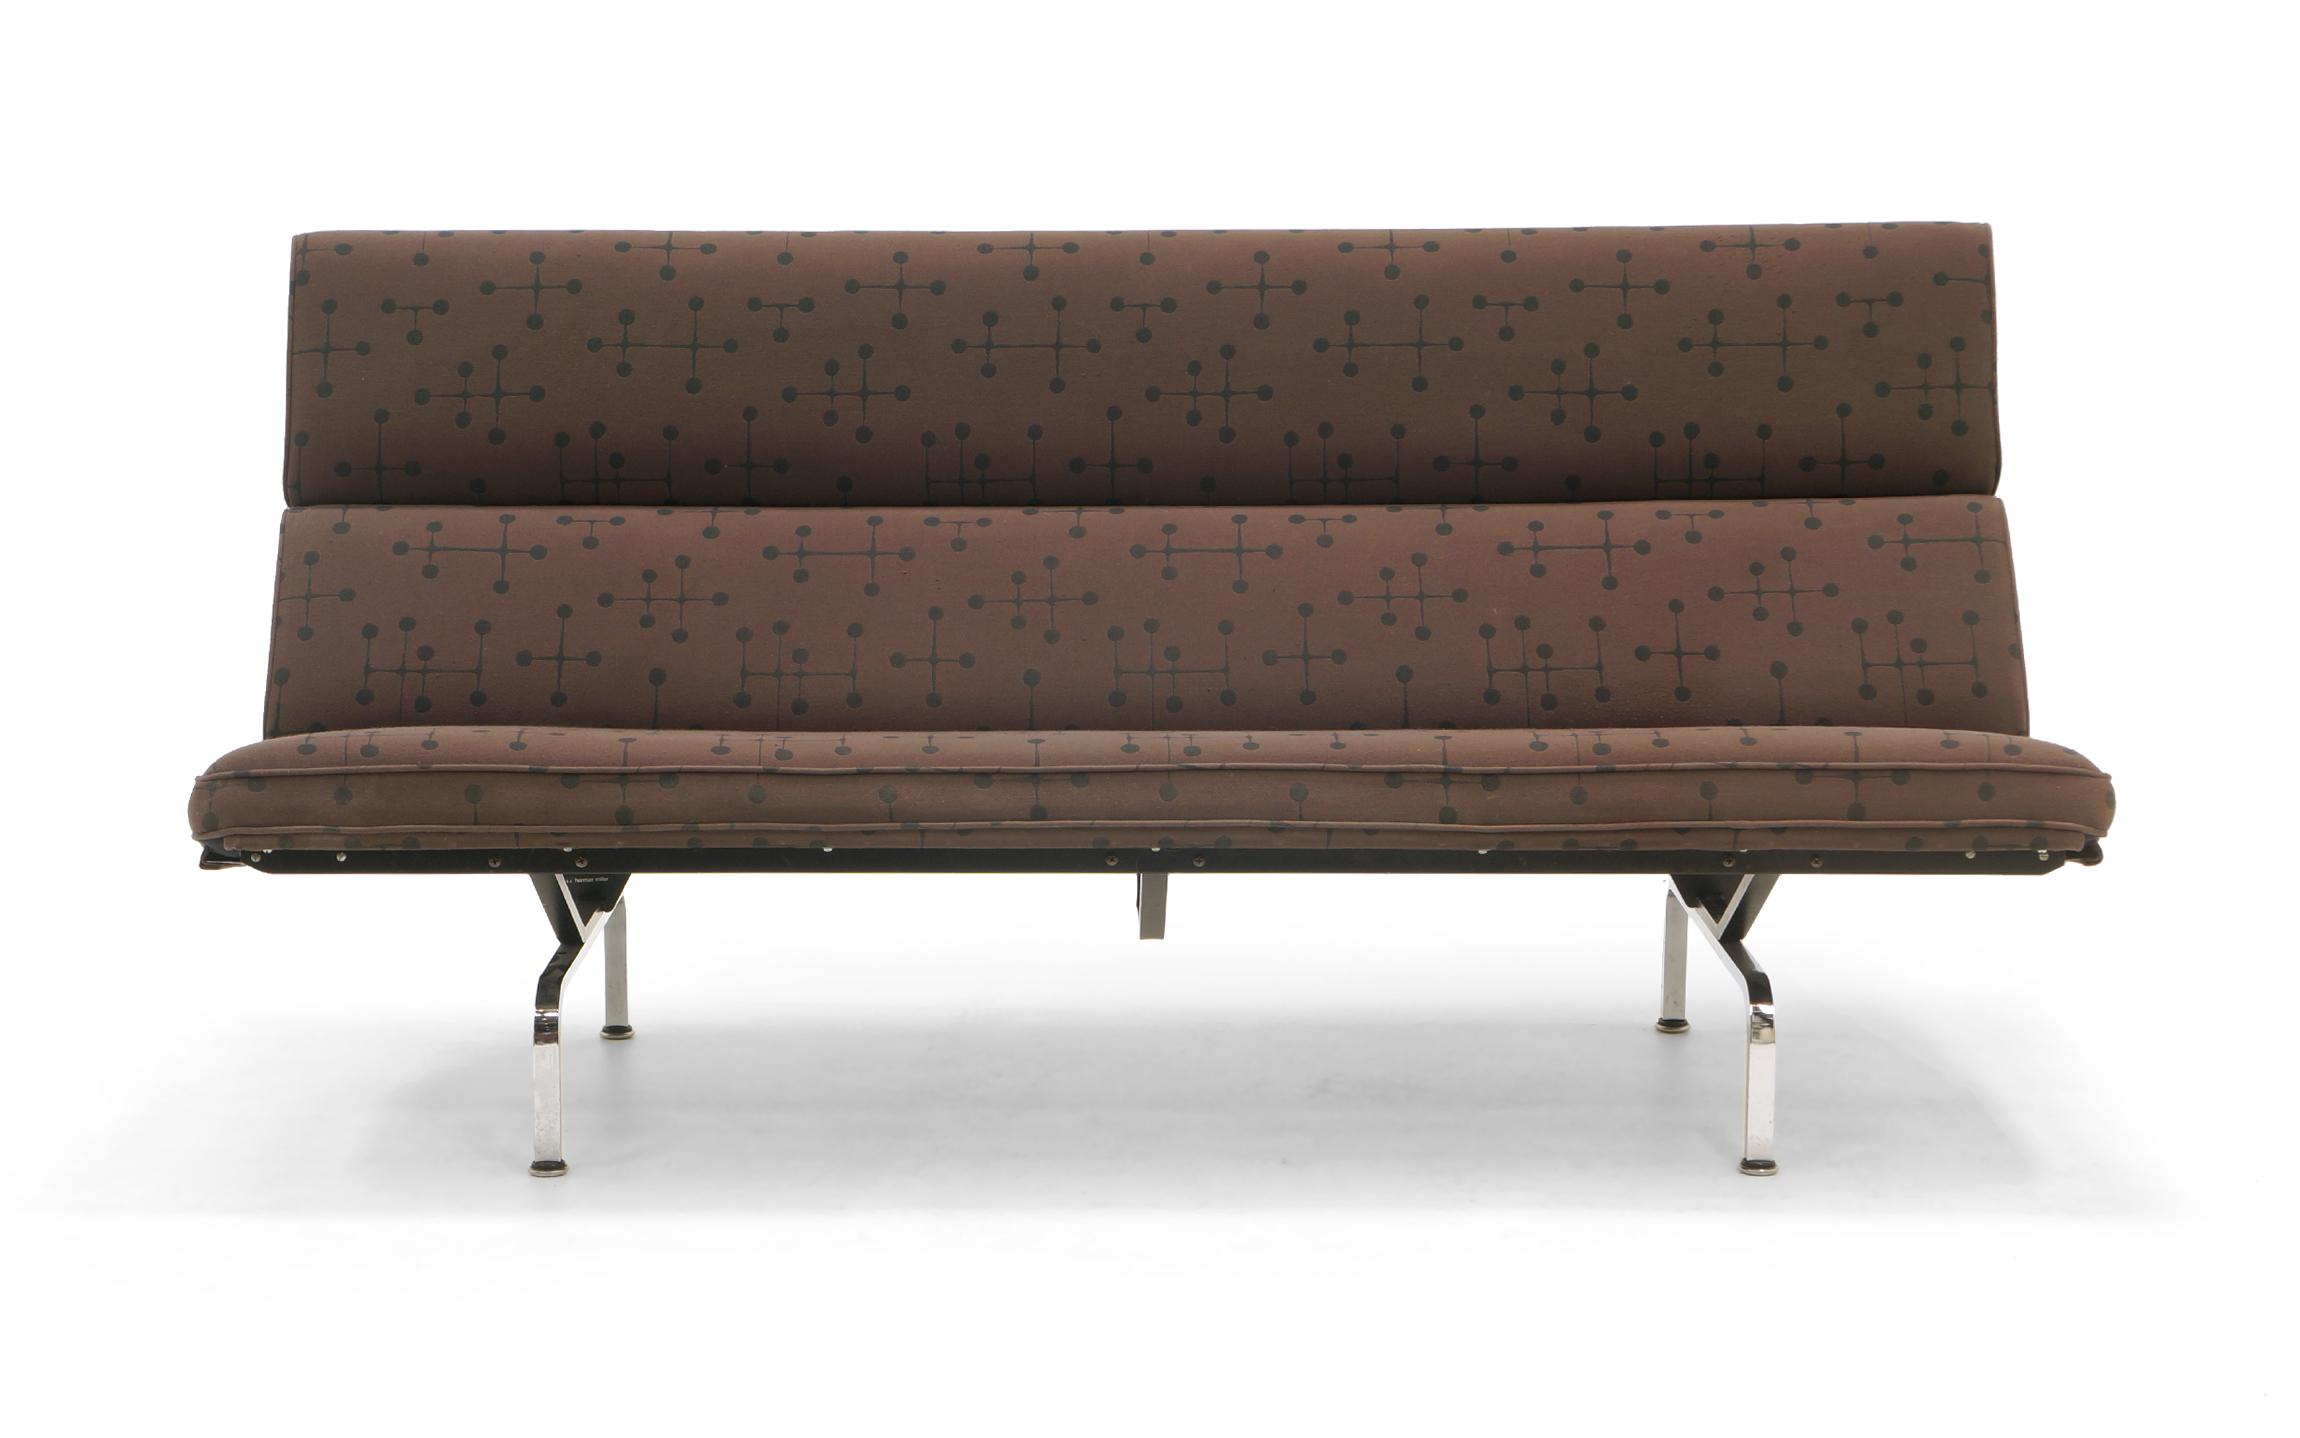 Elegant Charles And Ray Eames Sofa Compact For Herman Miller In Eames Dot Pattern  Fabric   Image